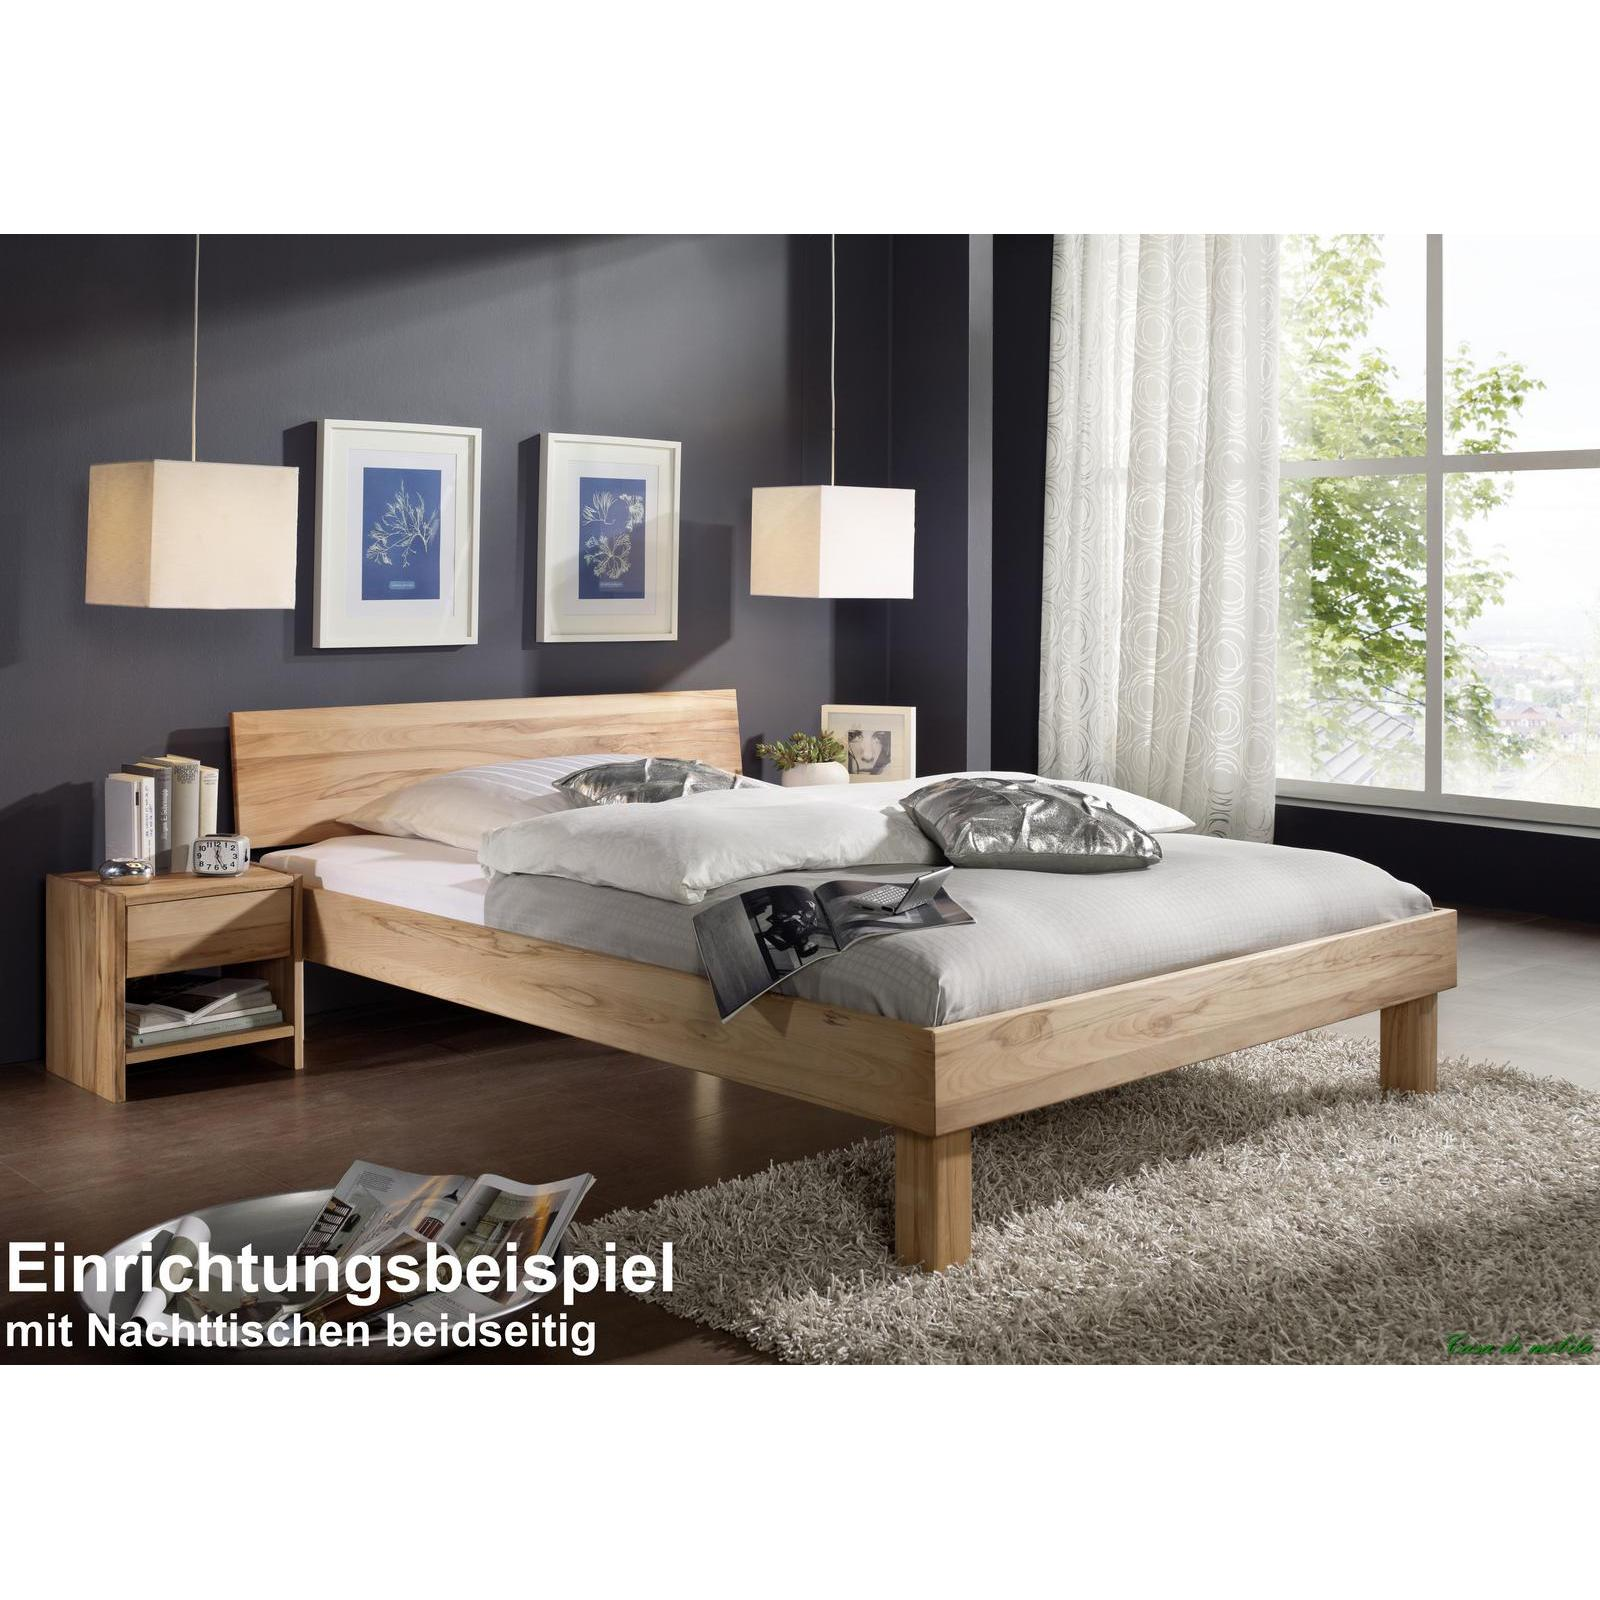 massivholz doppelbett kernbuche massiv ge lt holzbett campino bett 180x200 geschlossenes kopfteil. Black Bedroom Furniture Sets. Home Design Ideas